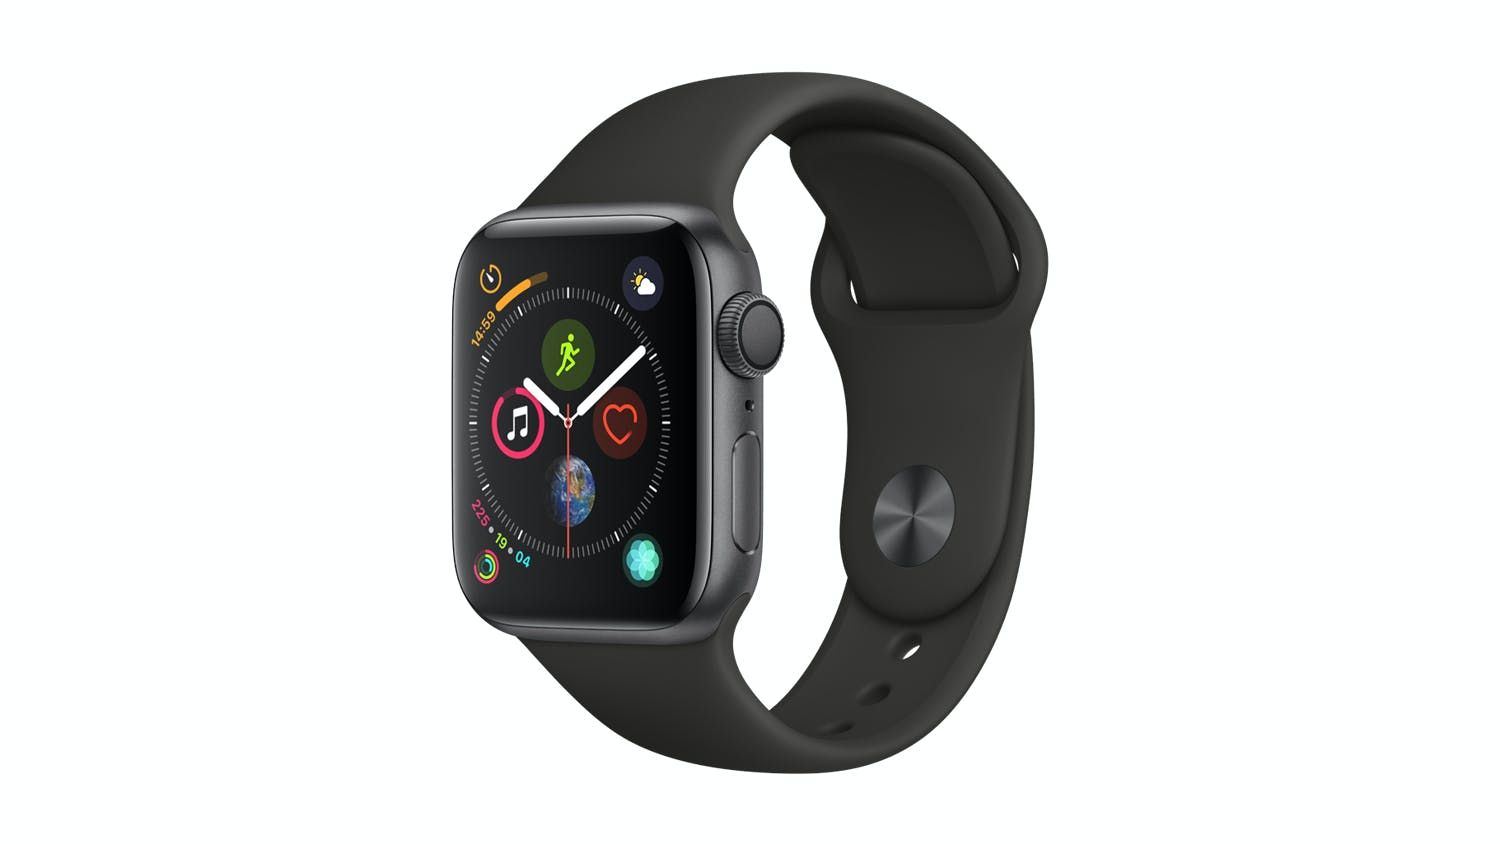 new concept 61302 7c017 Apple Watch Series 4 (GPS) 40mm Space Grey + Black Sport Band